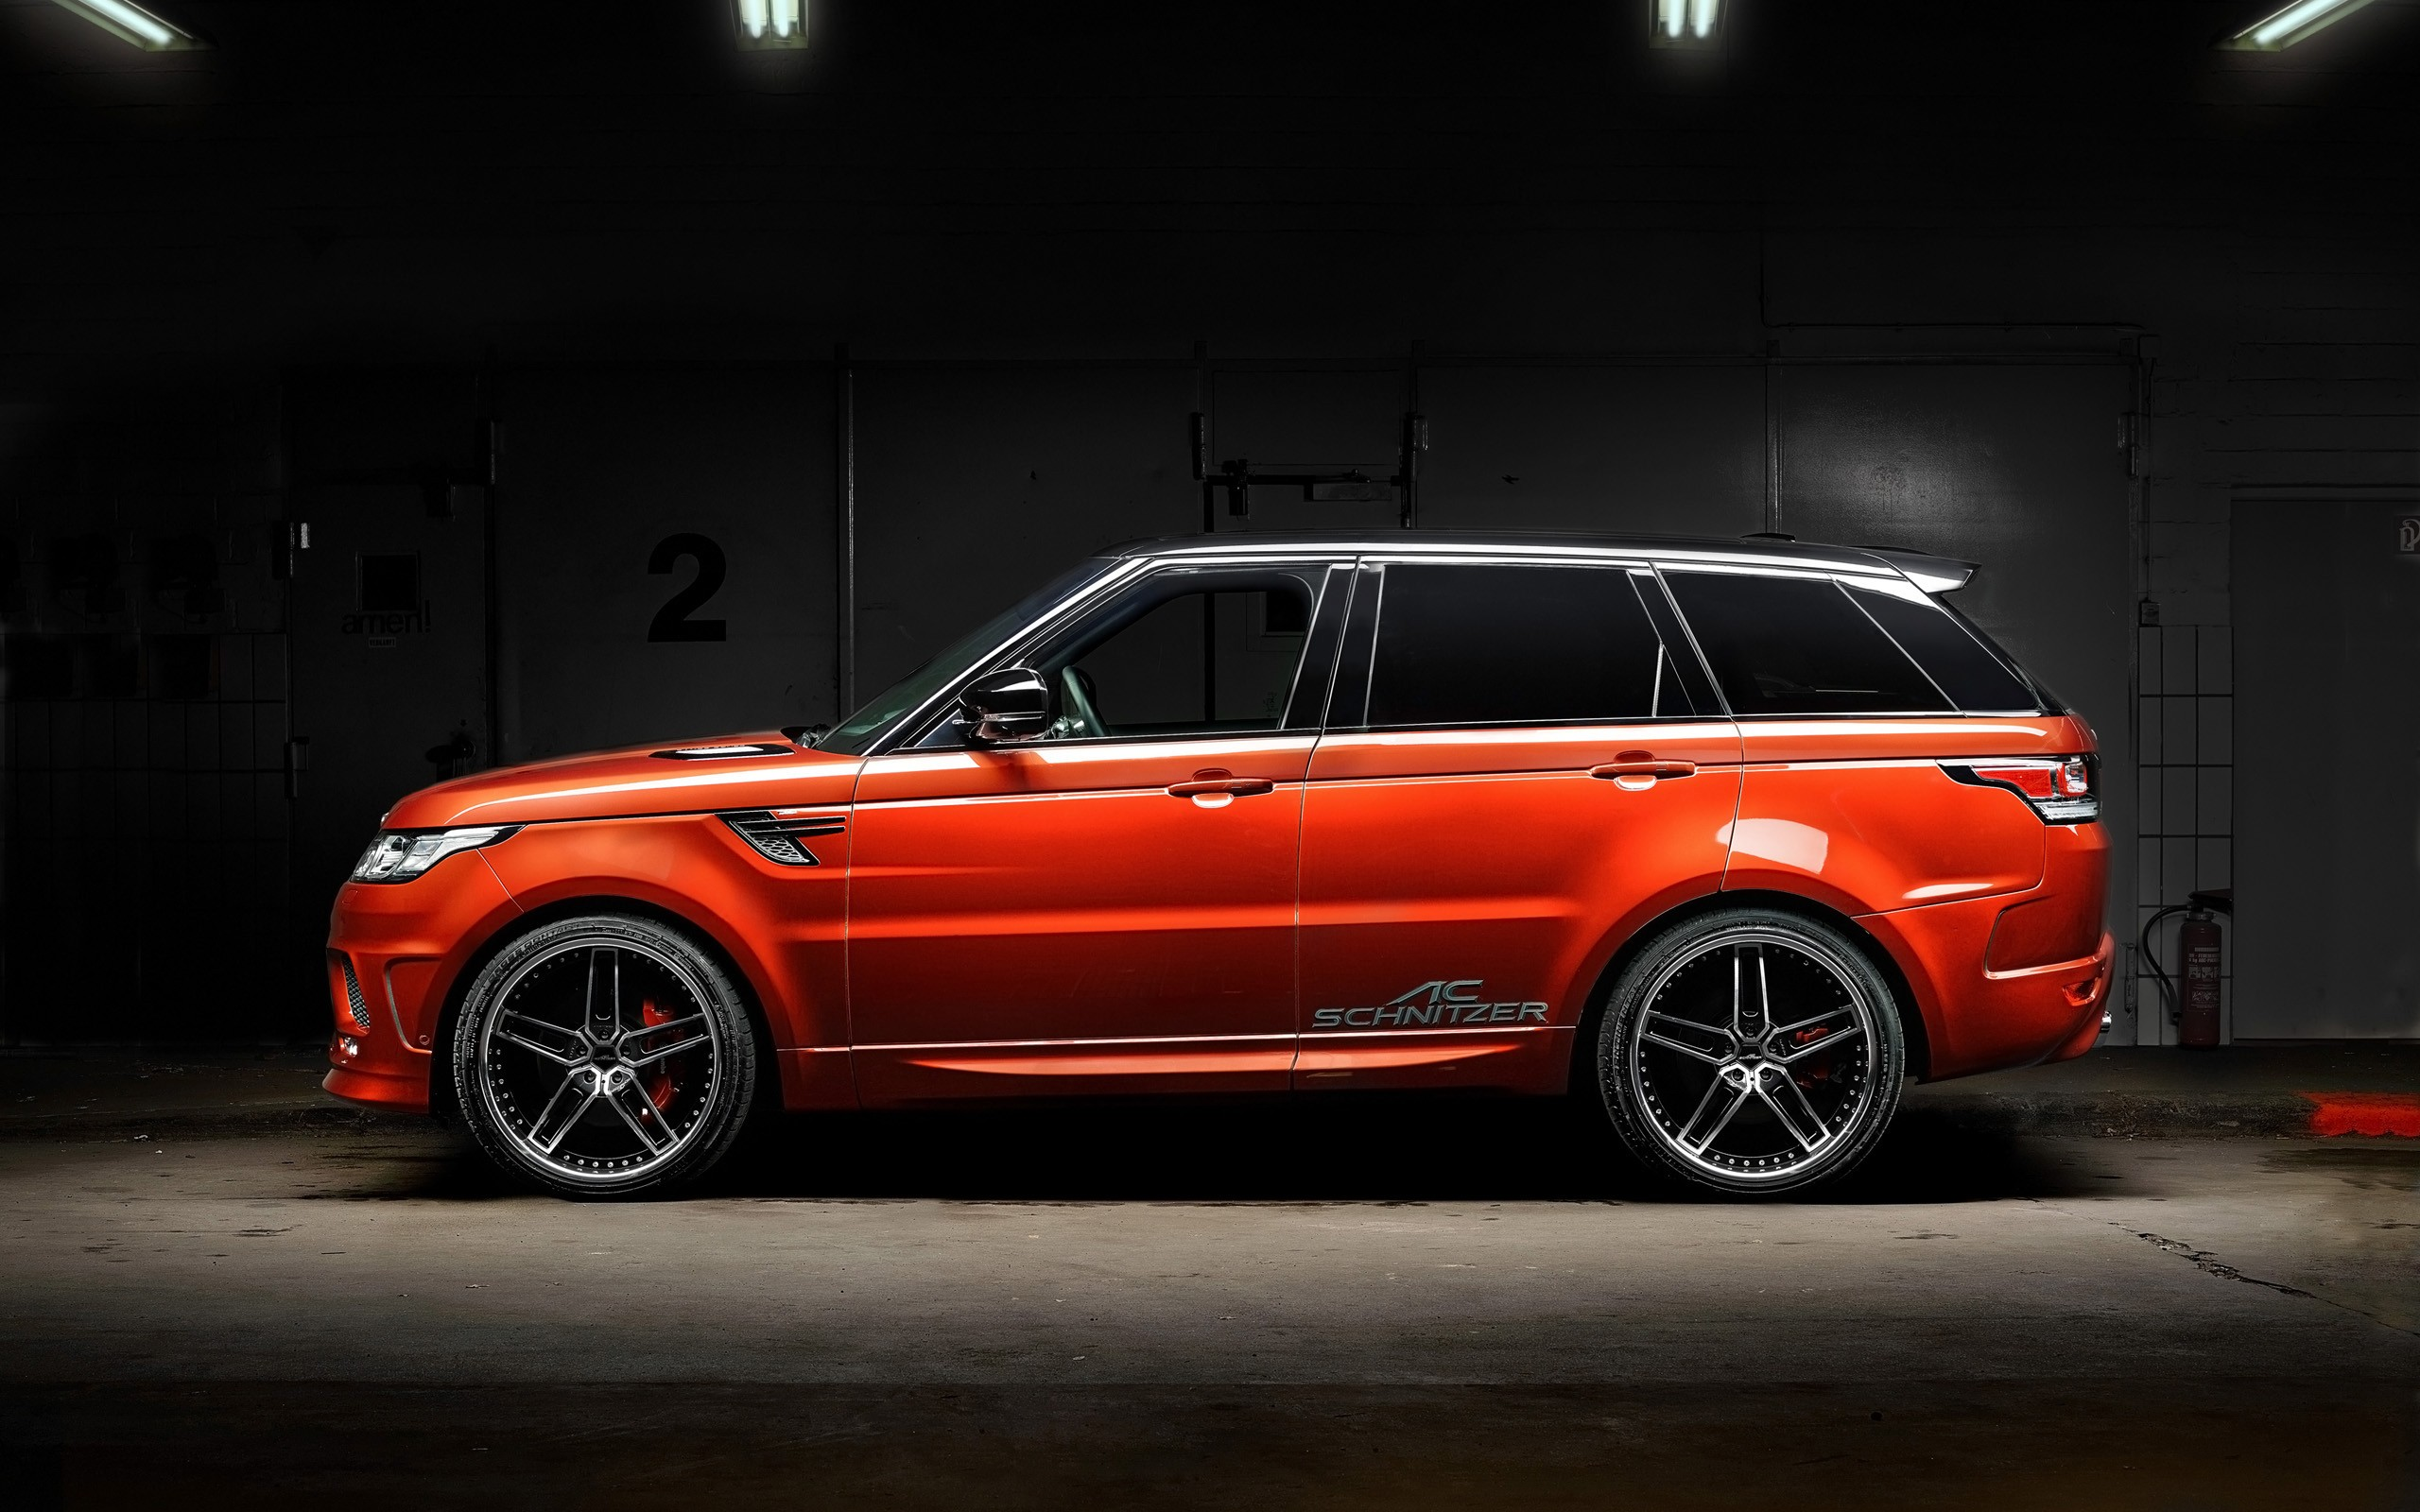 Land Rover Evoque >> 2014 Range Rover Sport By AC Schnitzer Wallpaper | HD Car ...